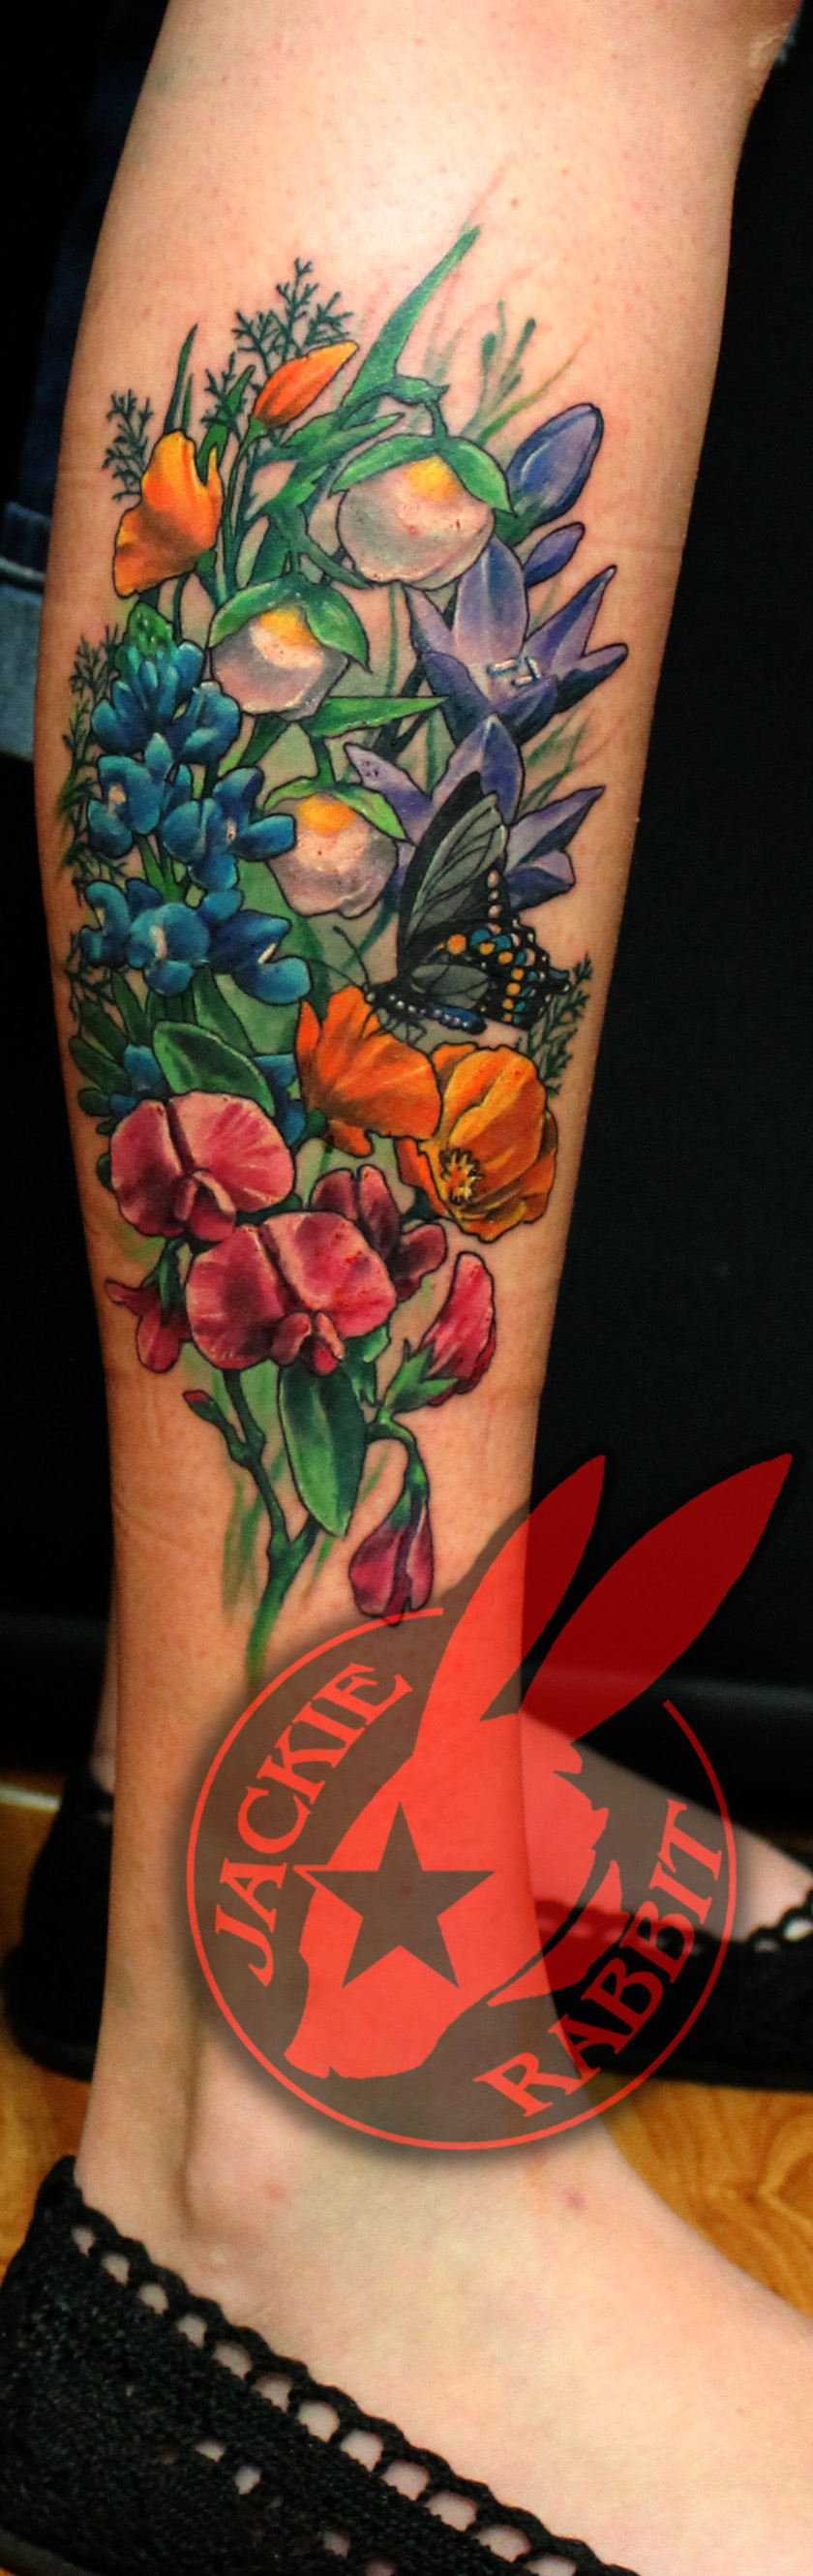 5c3faf52d594e California Wildflowers Tattoo by Jackie Rabbit by jackierabbit12 on ...